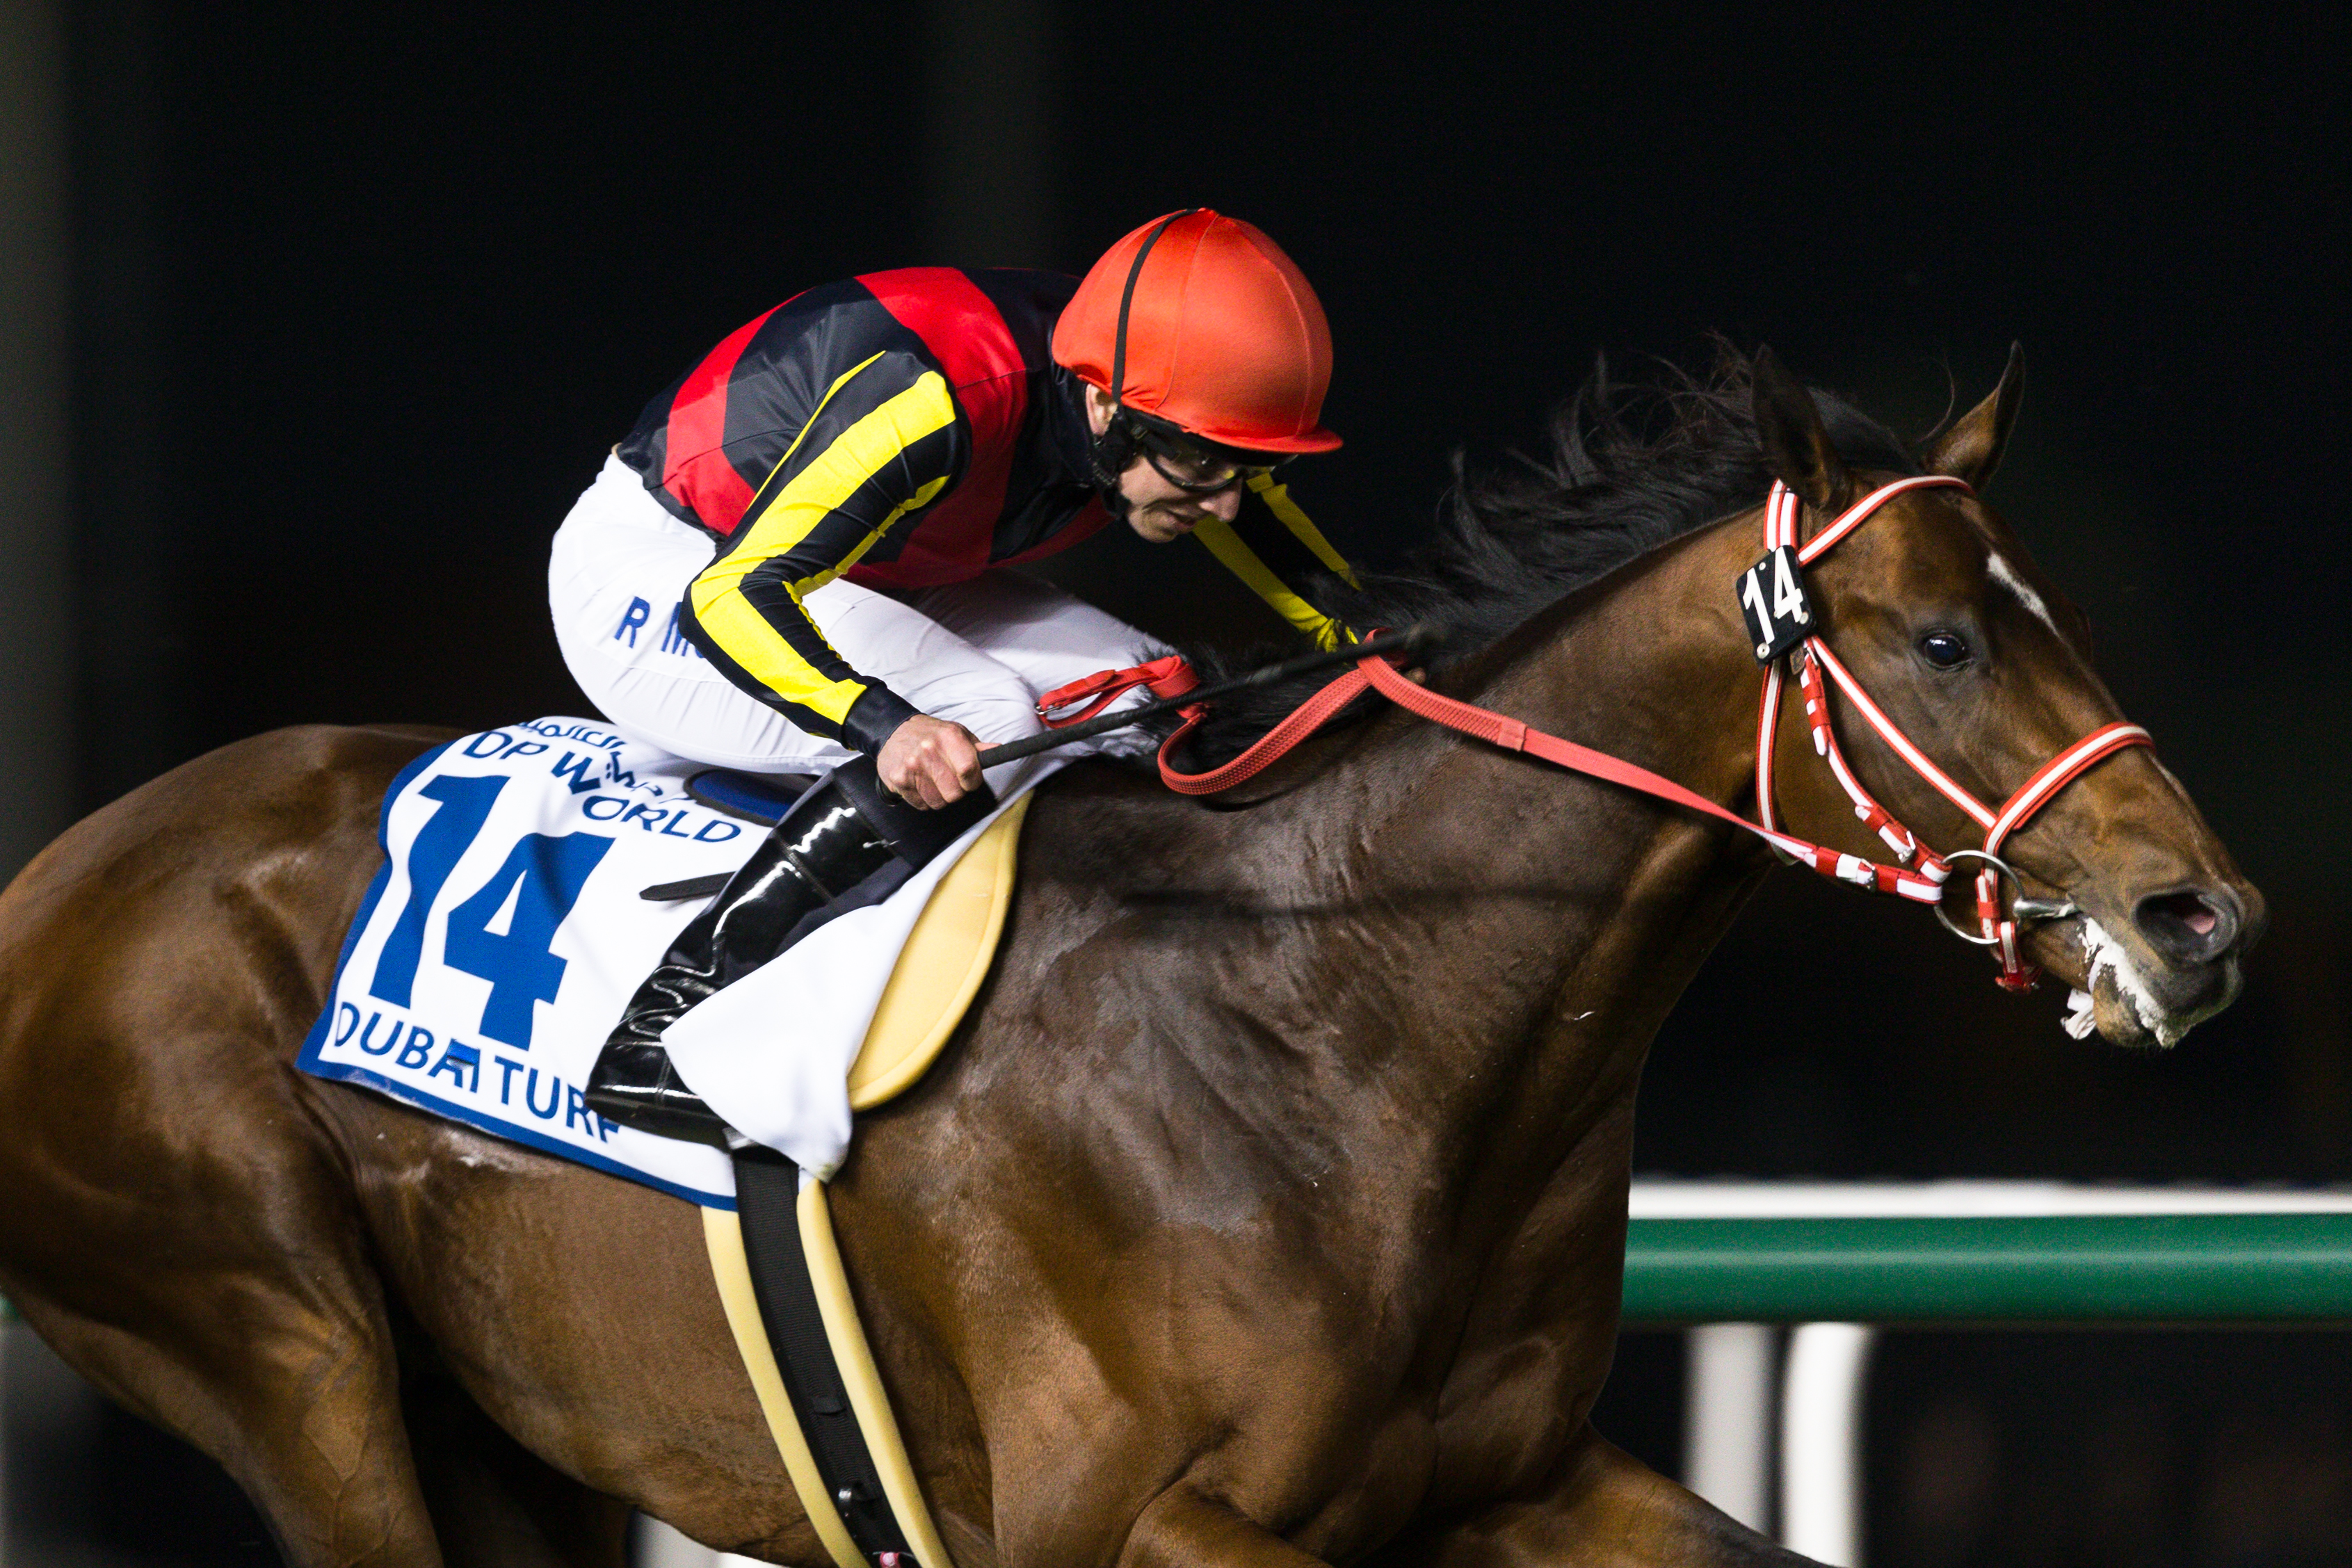 Horse Times Egypt: Equestrian Magazine :News :TRACKWORK NOTES :  GROUP ONE 6M$ DUBAI TURF BY DP WORLD - 1800M